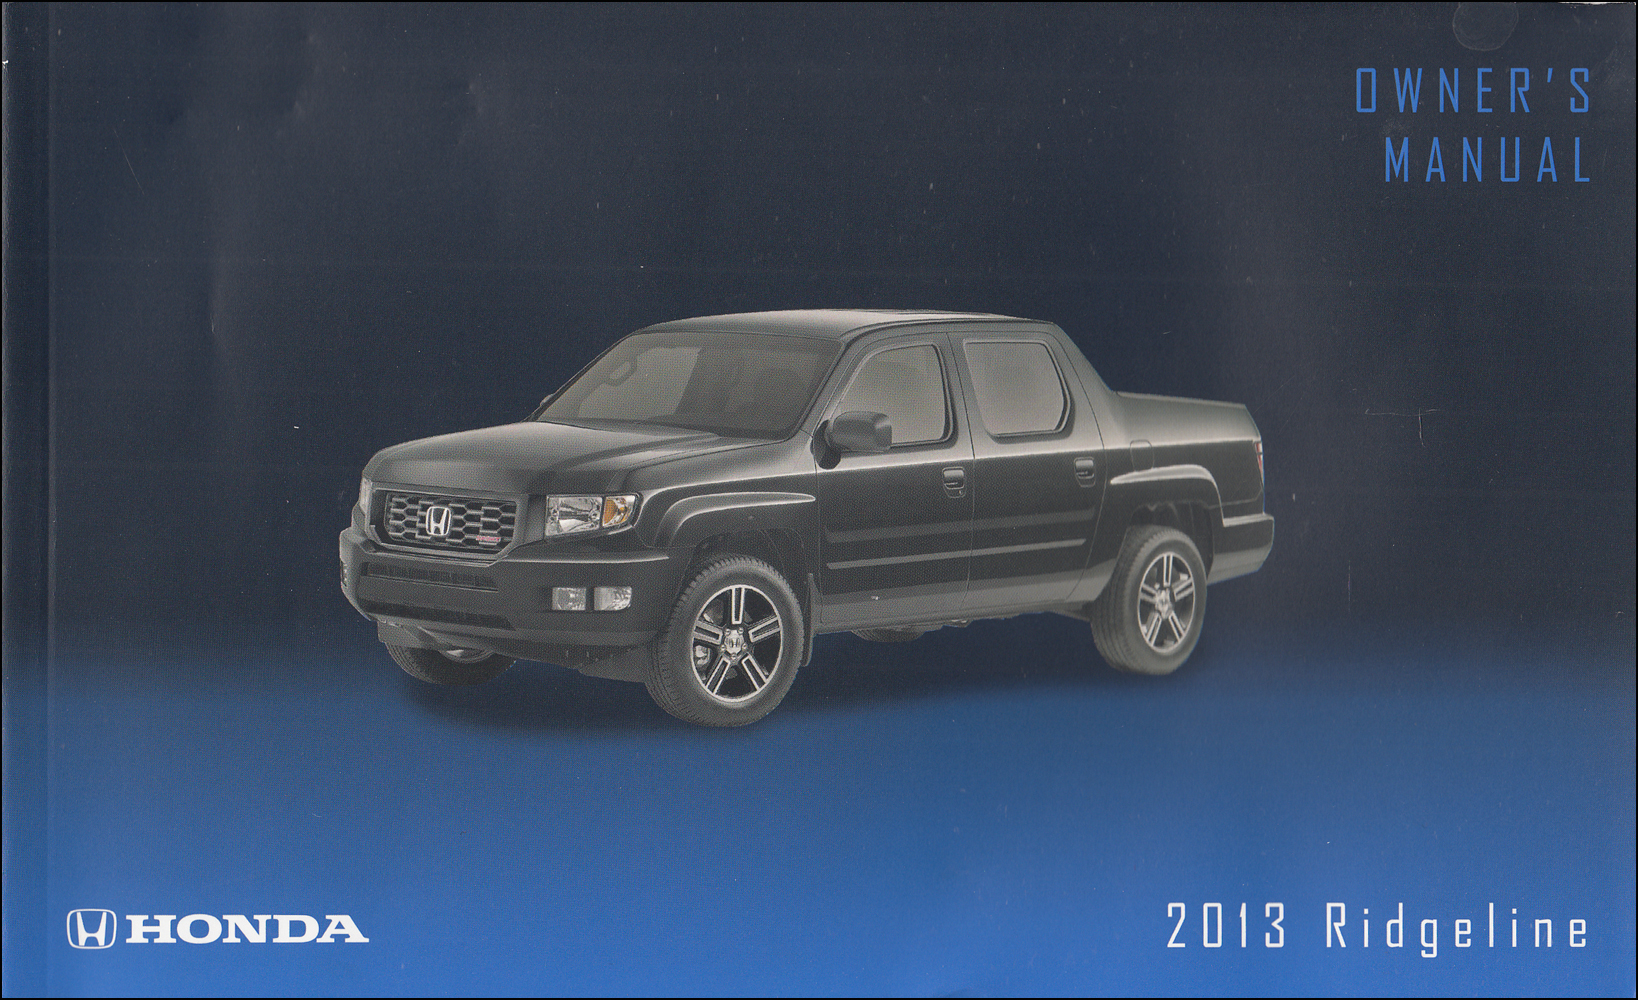 2013 Honda Ridgeline Owner's Manual Original